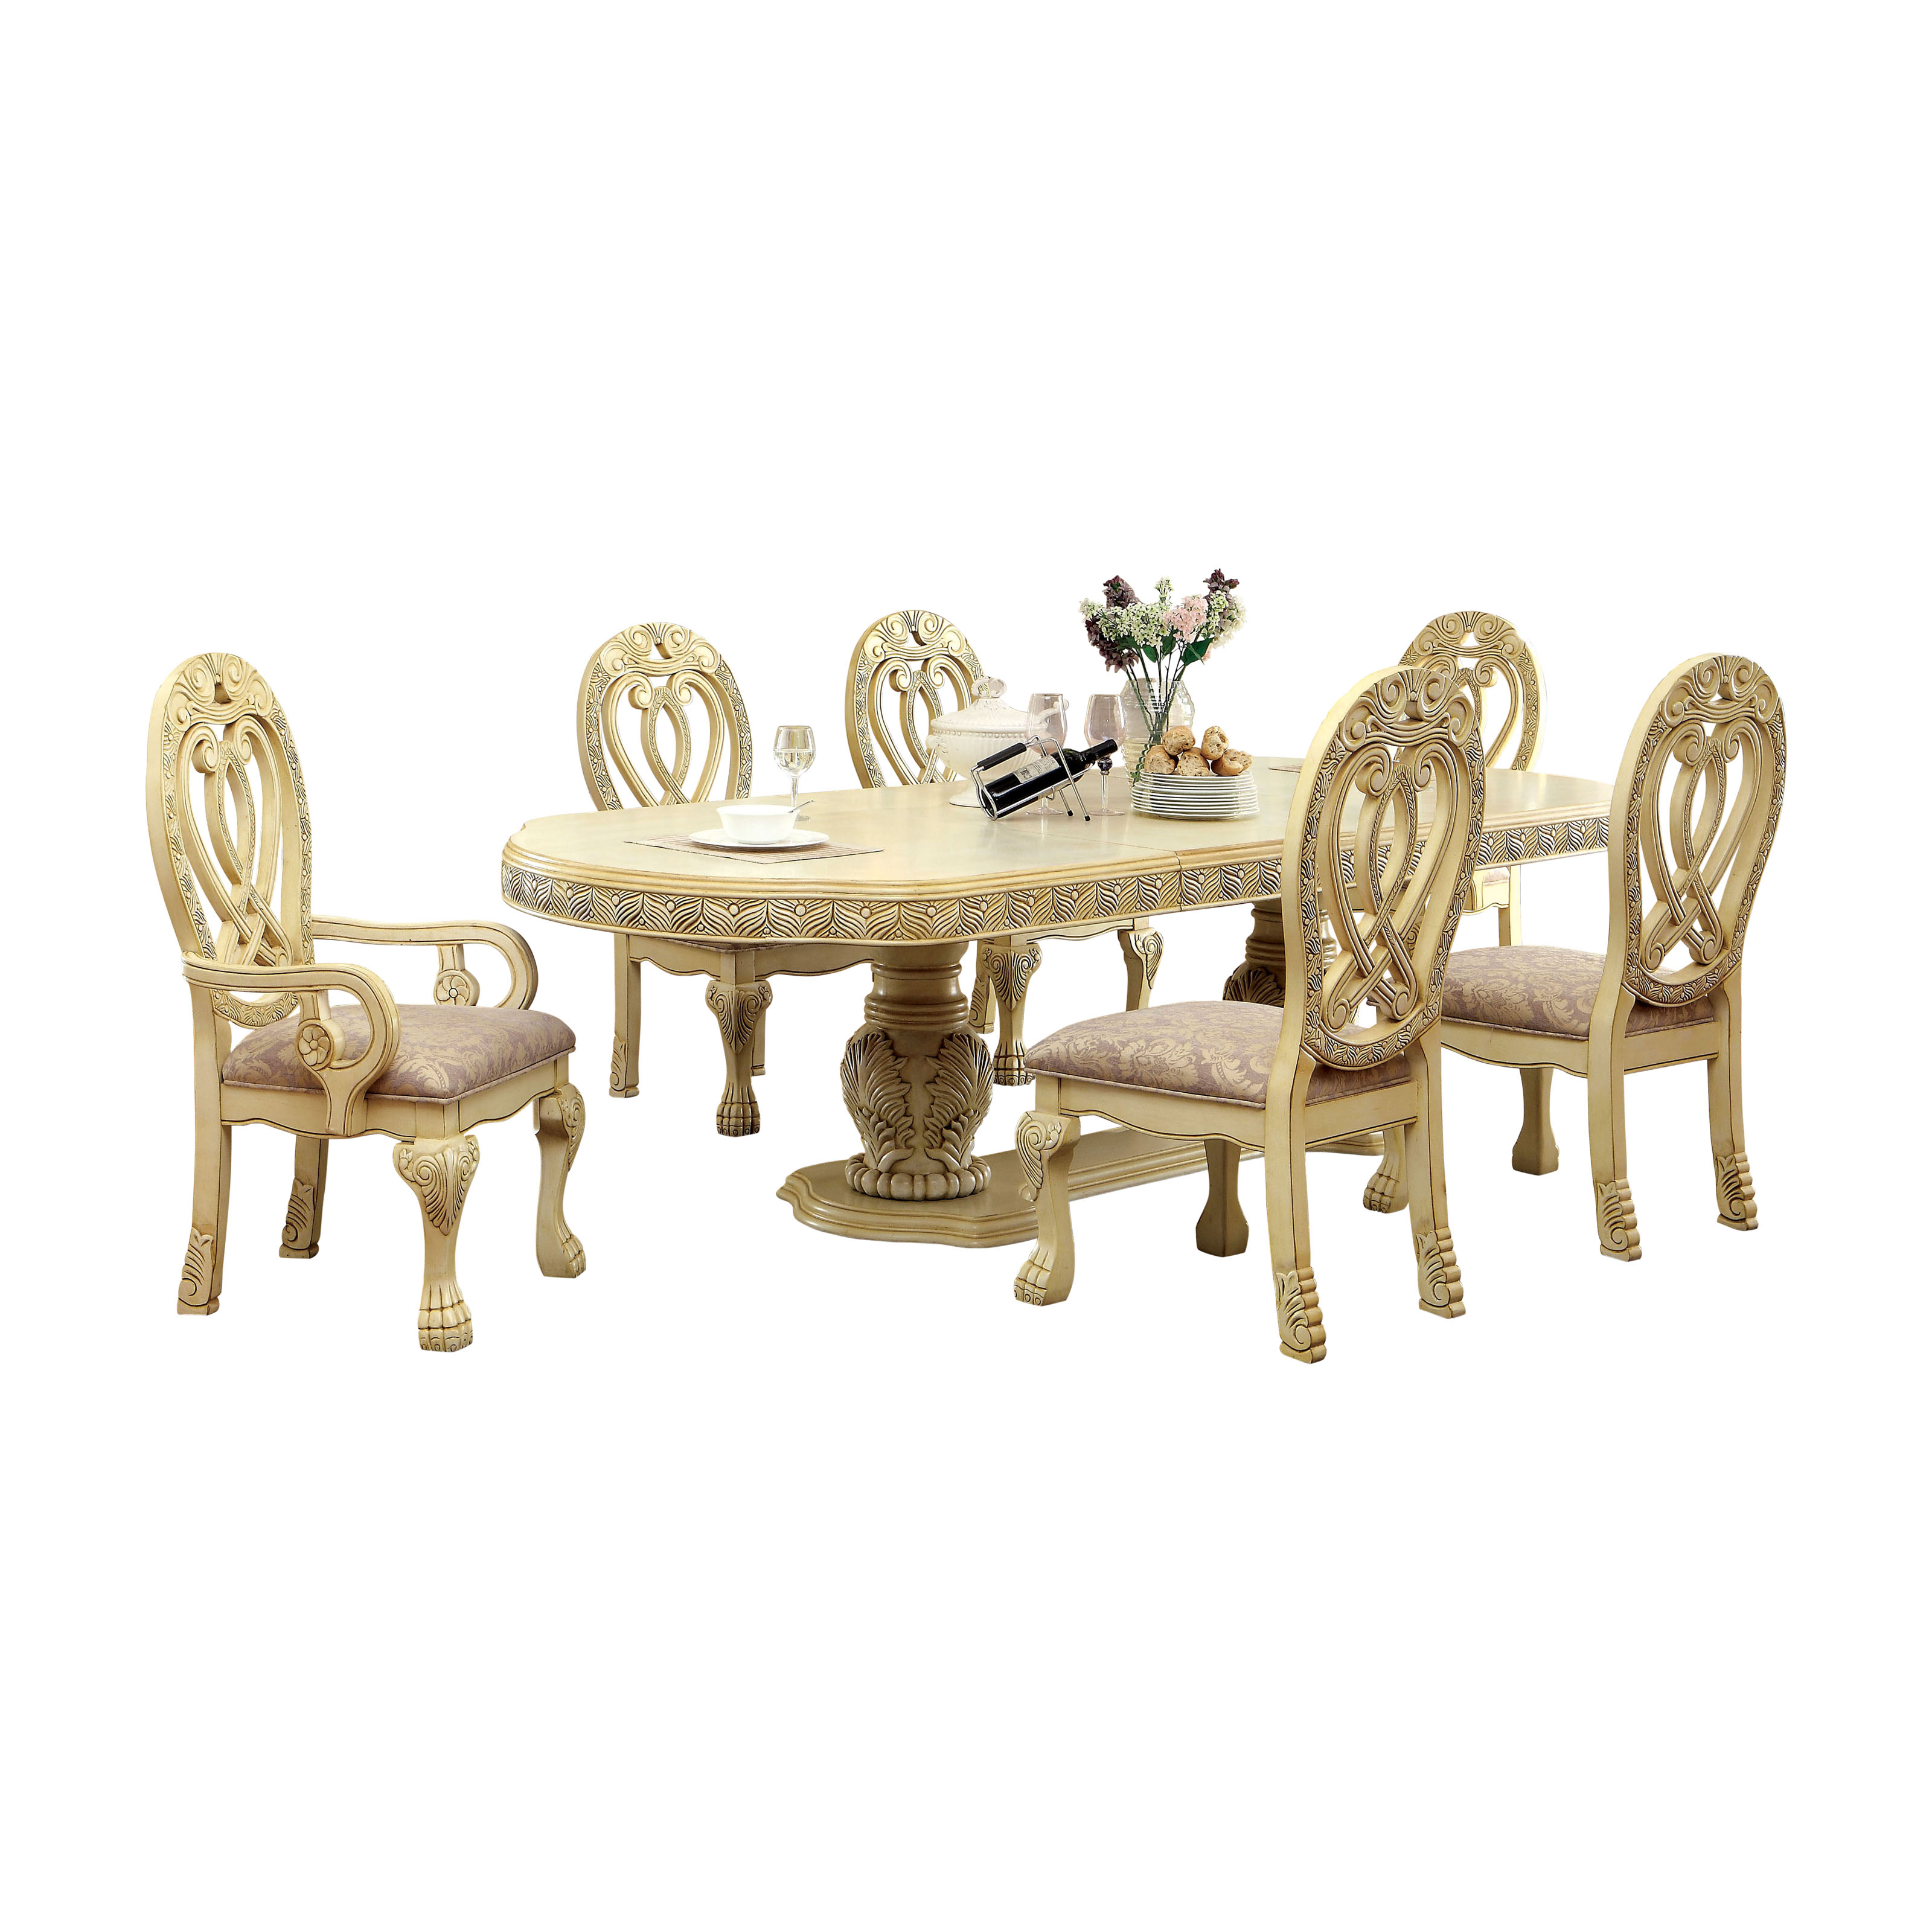 Furniture Of America Grandberry Traditional 7 Piece Dining Table Set   White  | Hayneedle